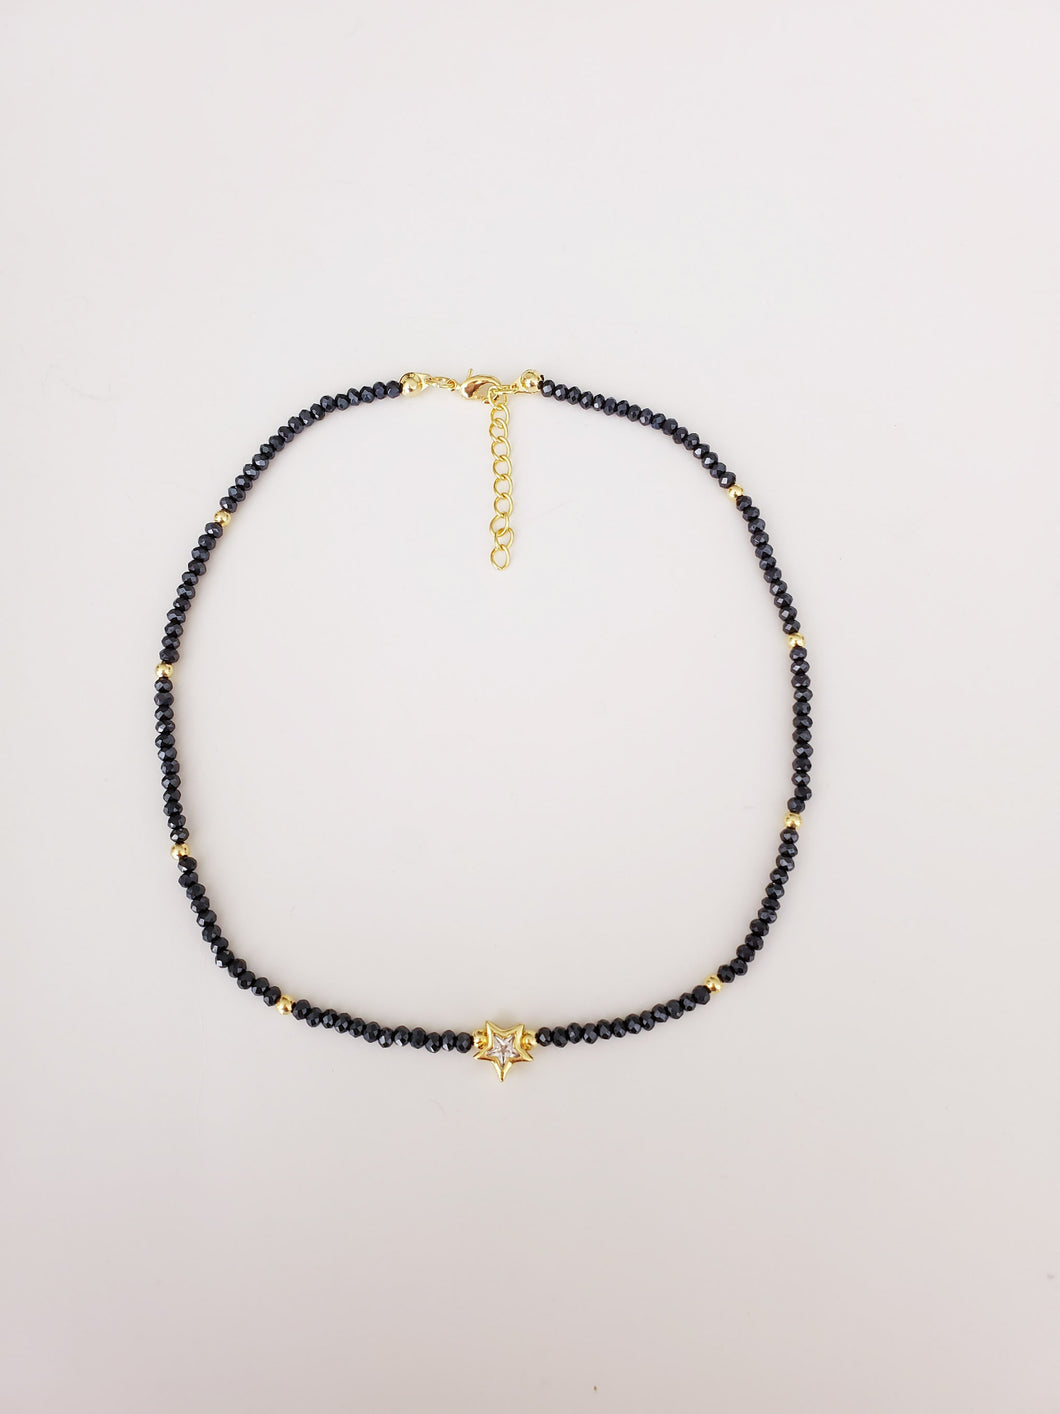 Pave Star and Crystals Beads Choker